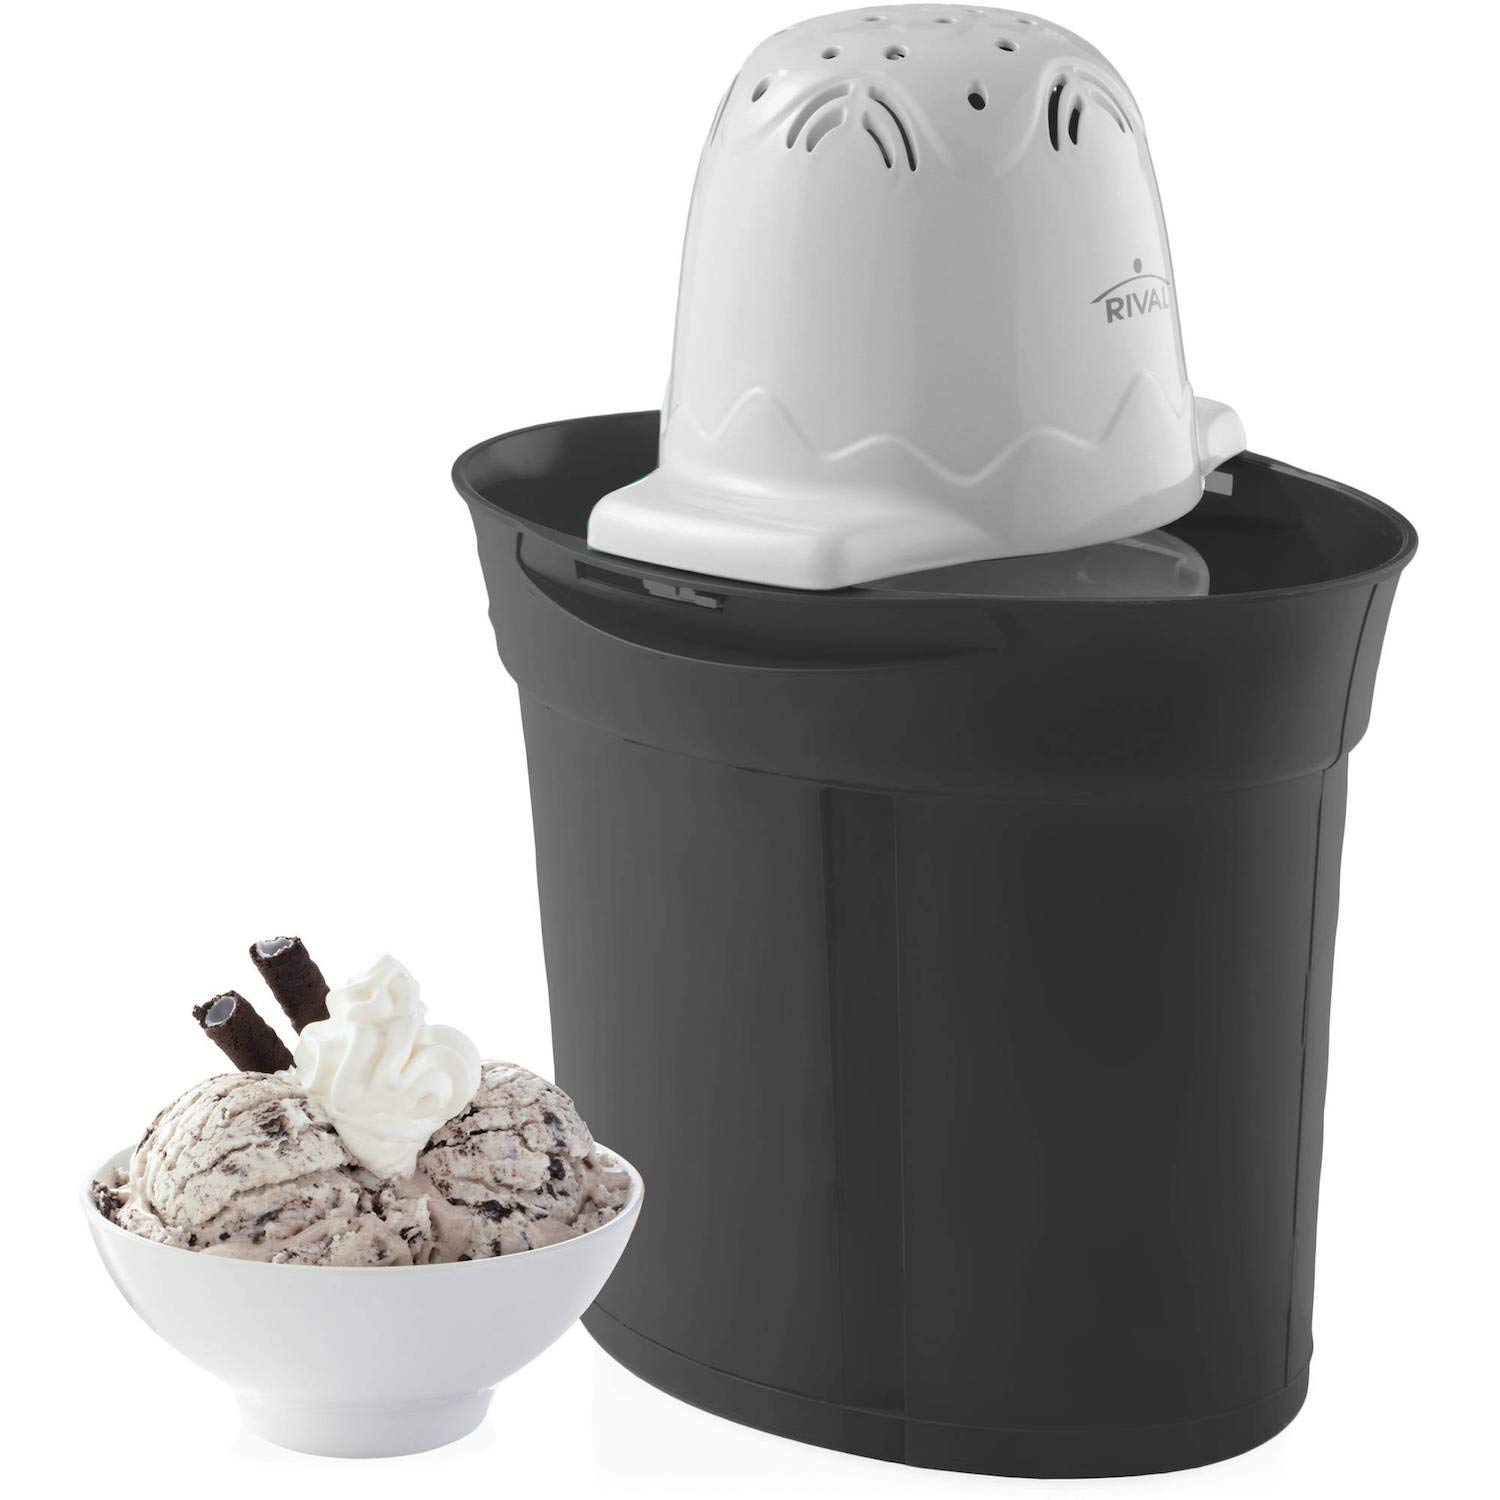 Rival Frozen Delights 4 Quart Ice Cream Maker - BLACK by Rival (Image #1)